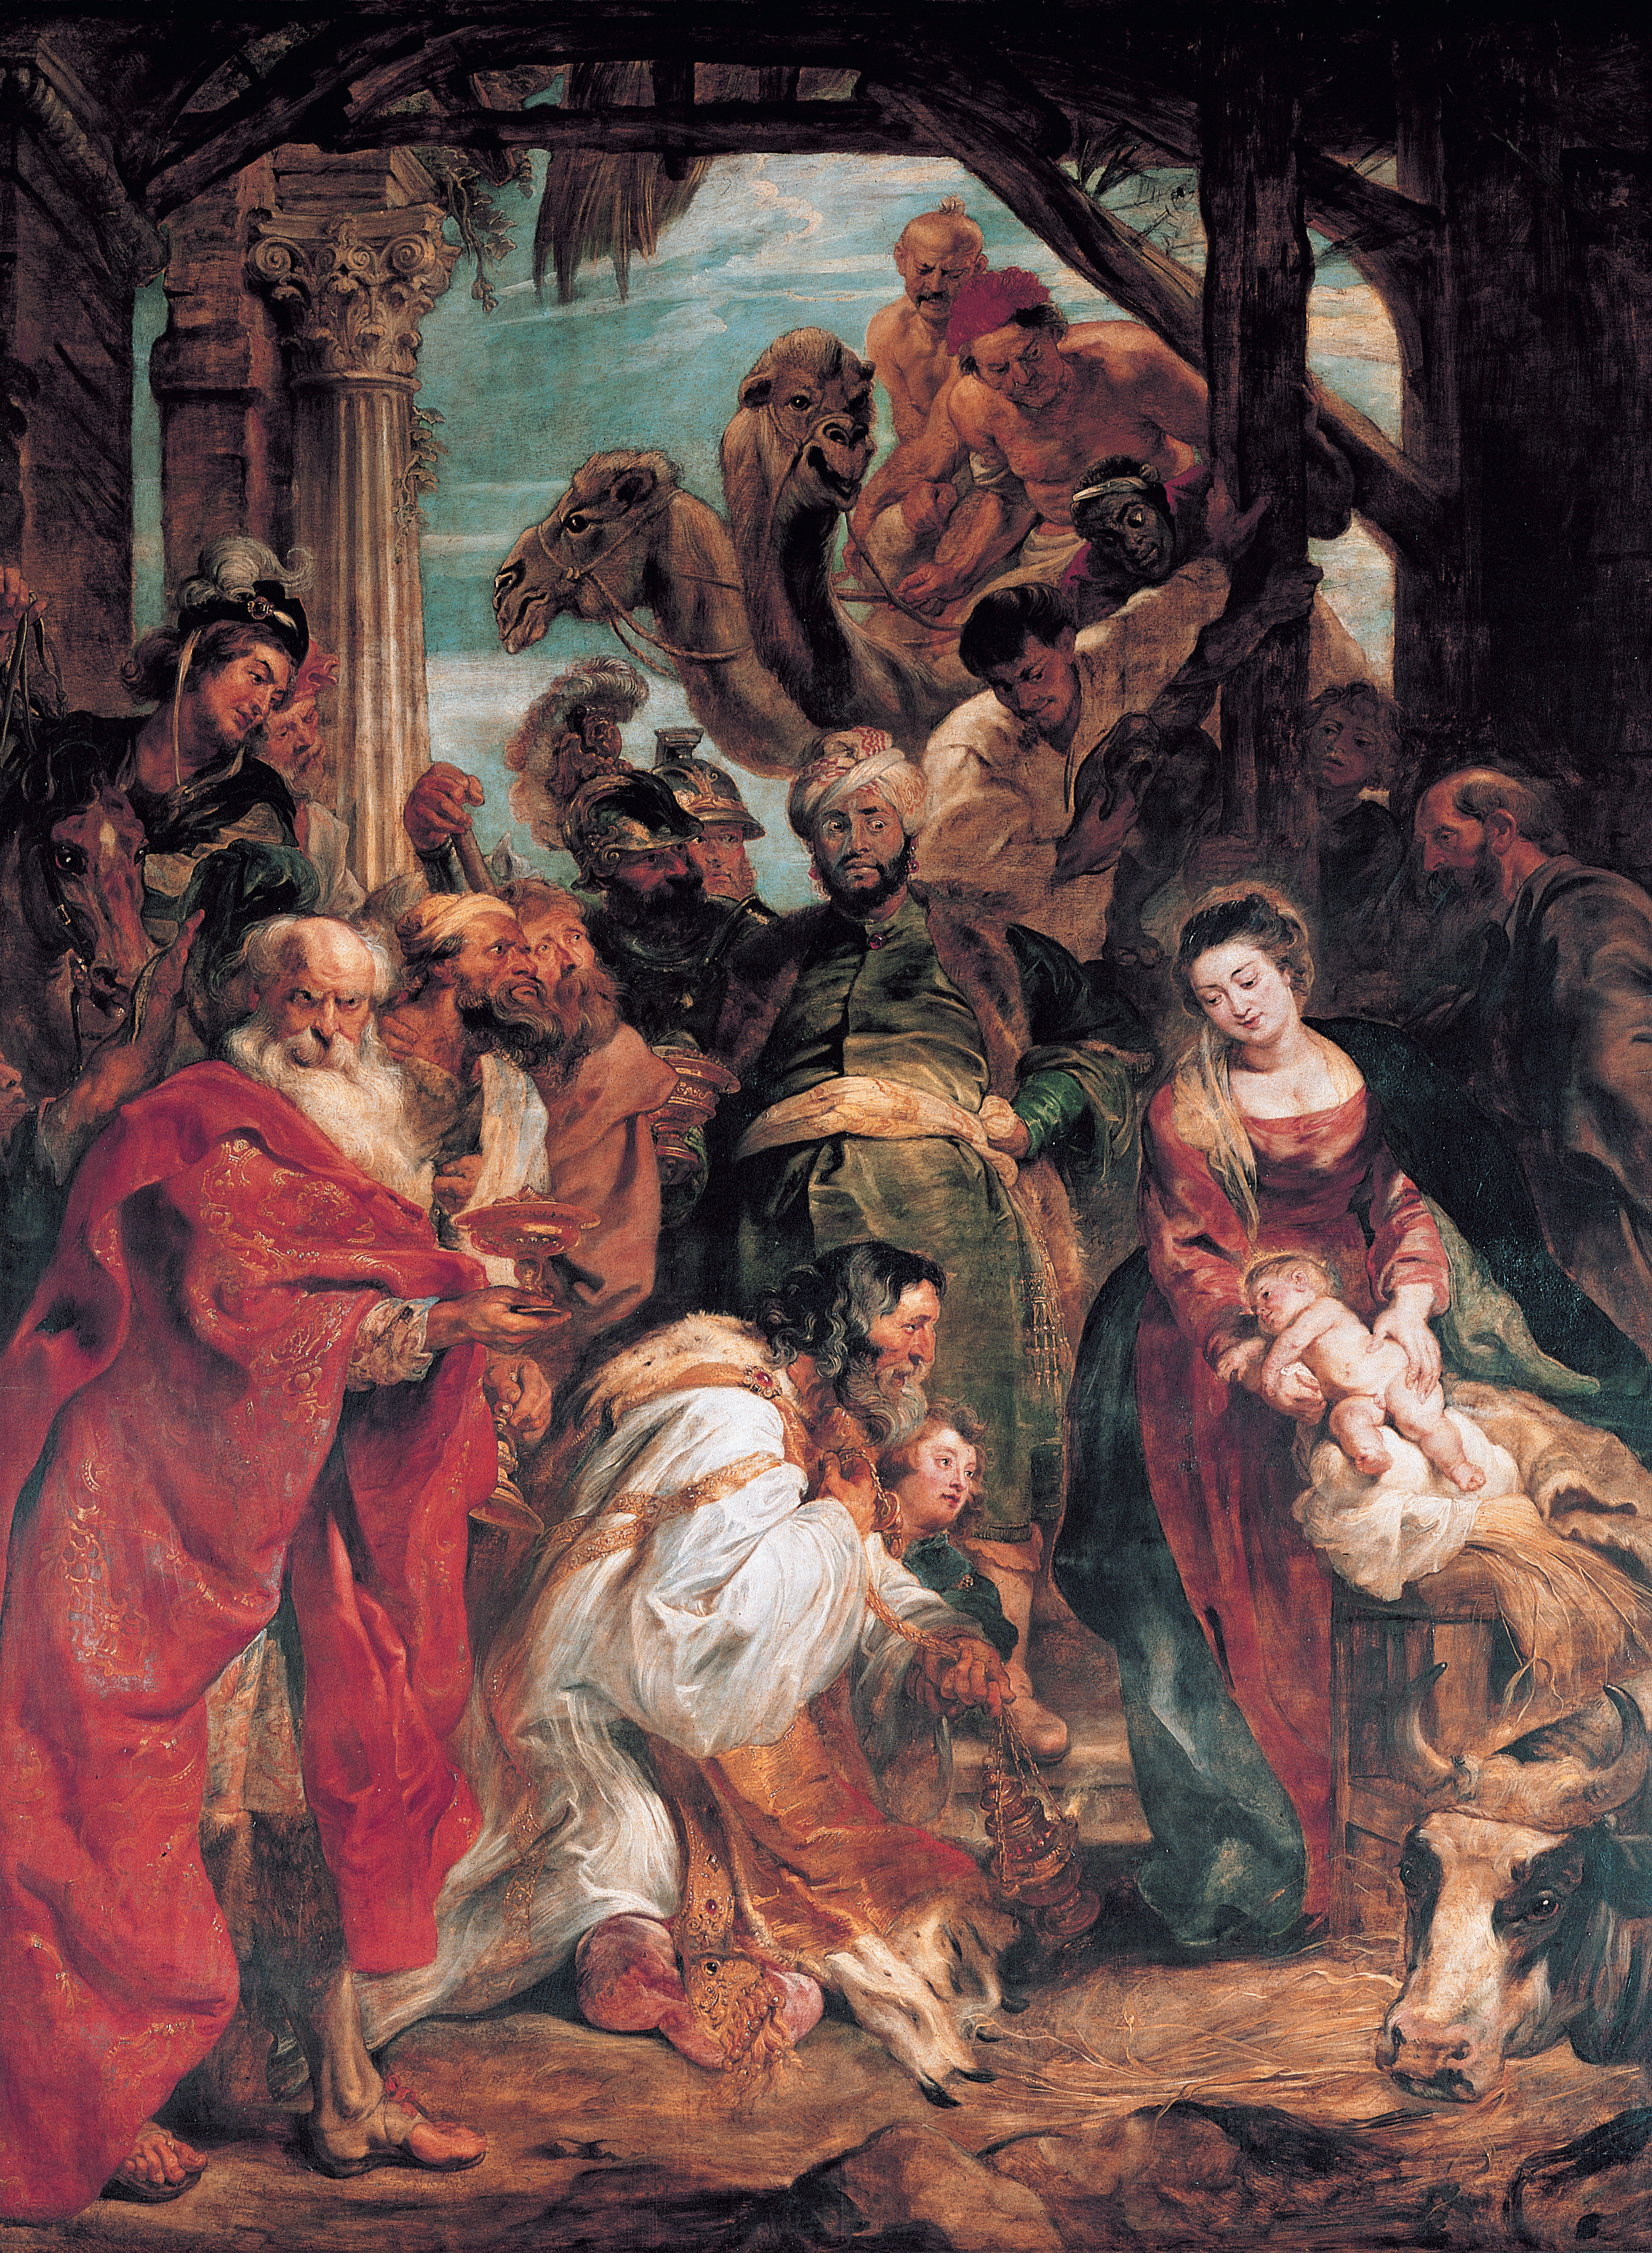 Peter Paul Rubens was the great Flemish artist of the Counter-Reformation; he painted the Adoration of the Magi in 1624.